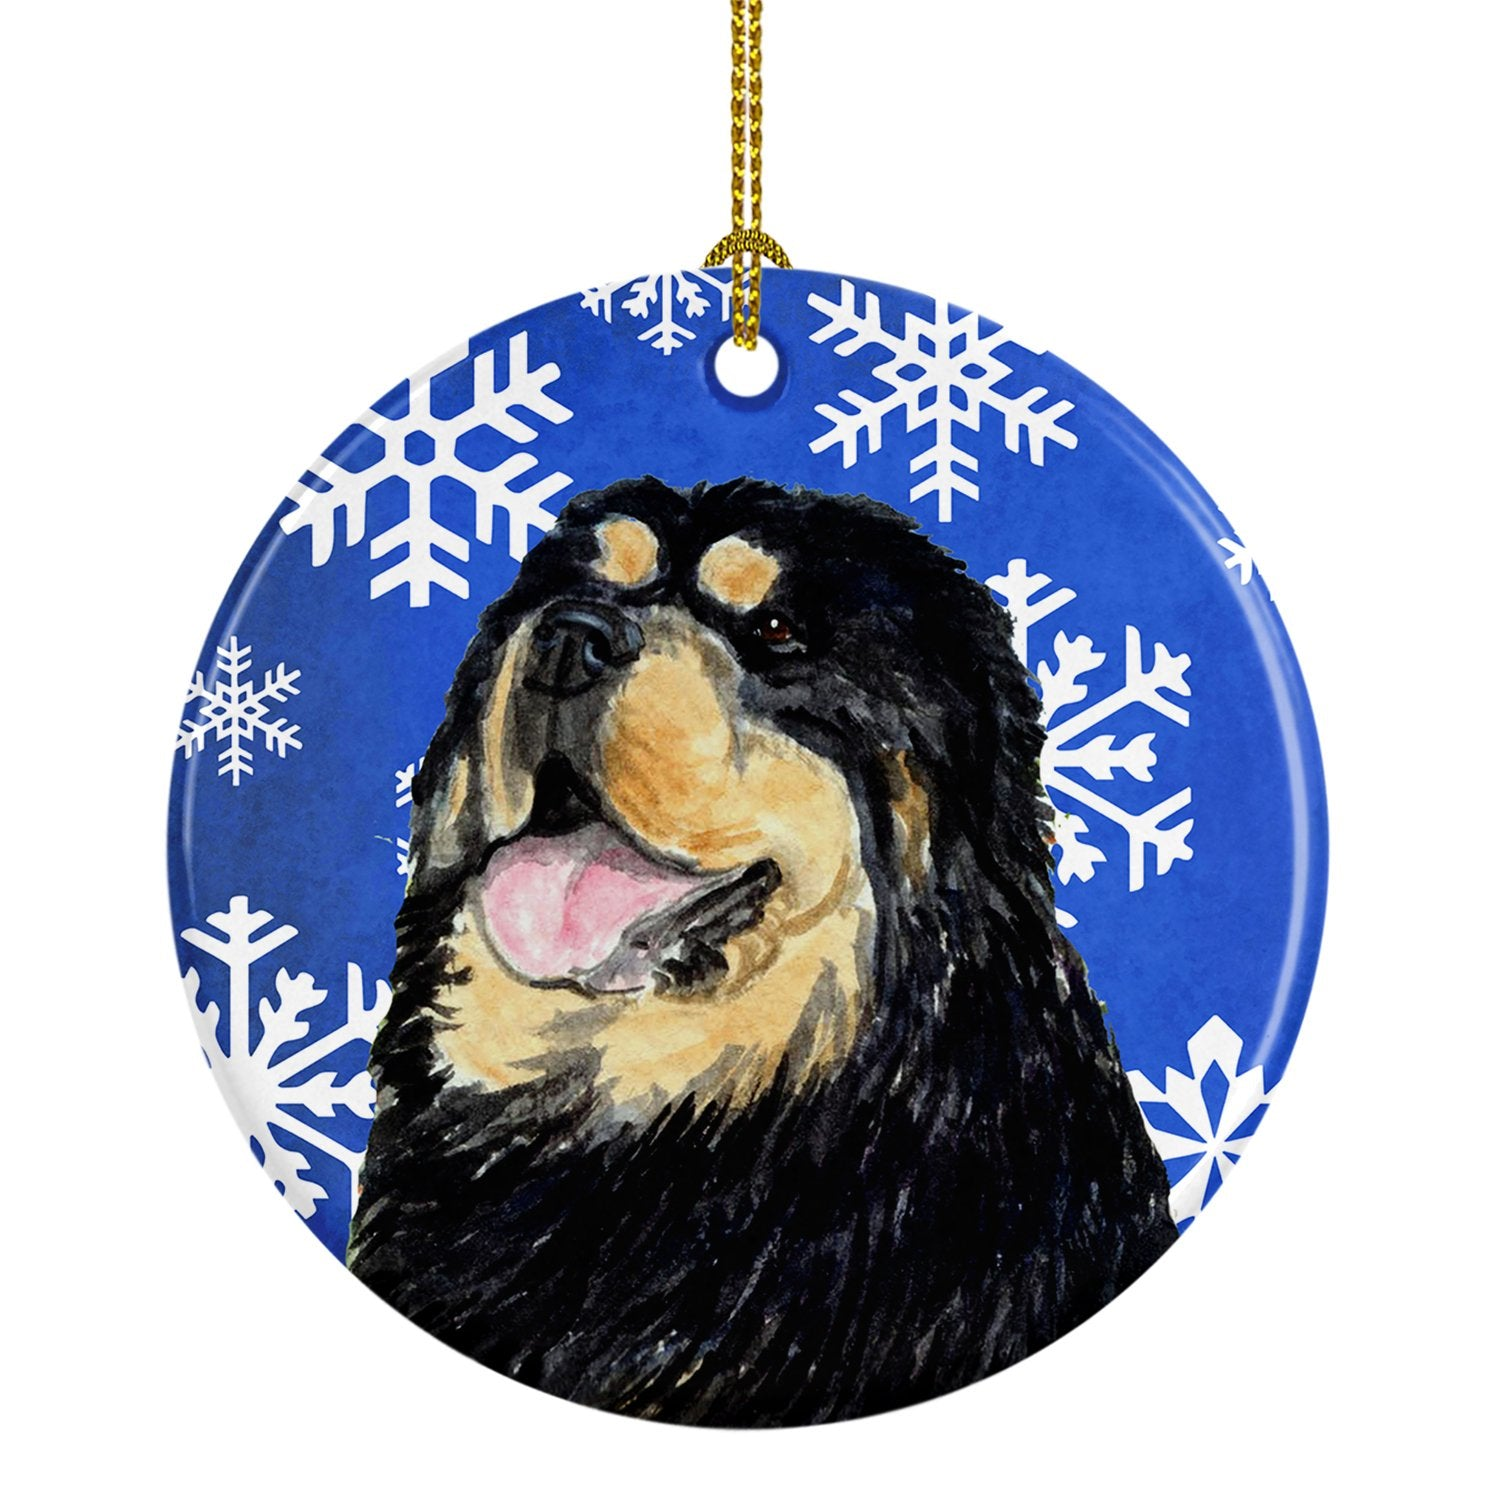 Tibetan Mastiff Winter Snowflakes Holiday Christmas Ceramic Ornament SS4650 by Caroline's Treasures